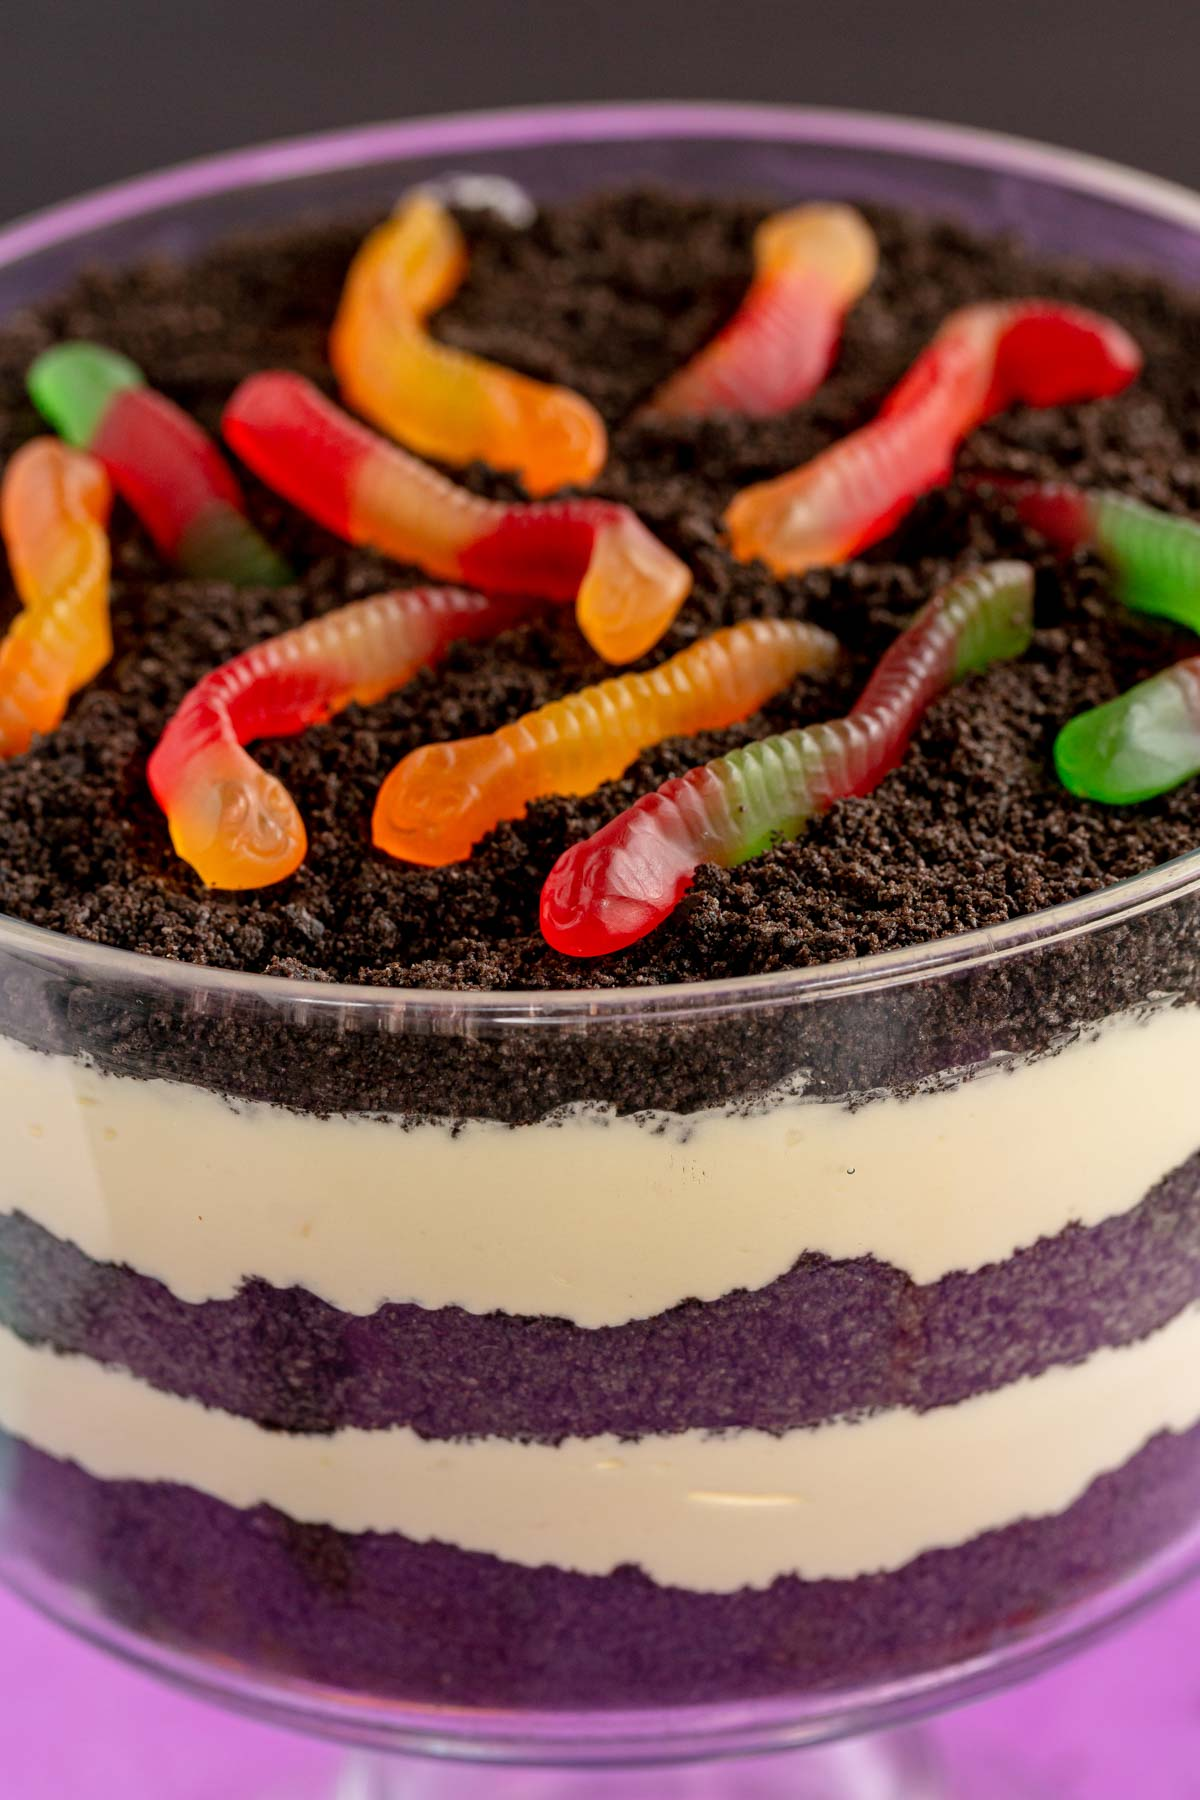 Close up view of worms on top of an Oreo dirt cake